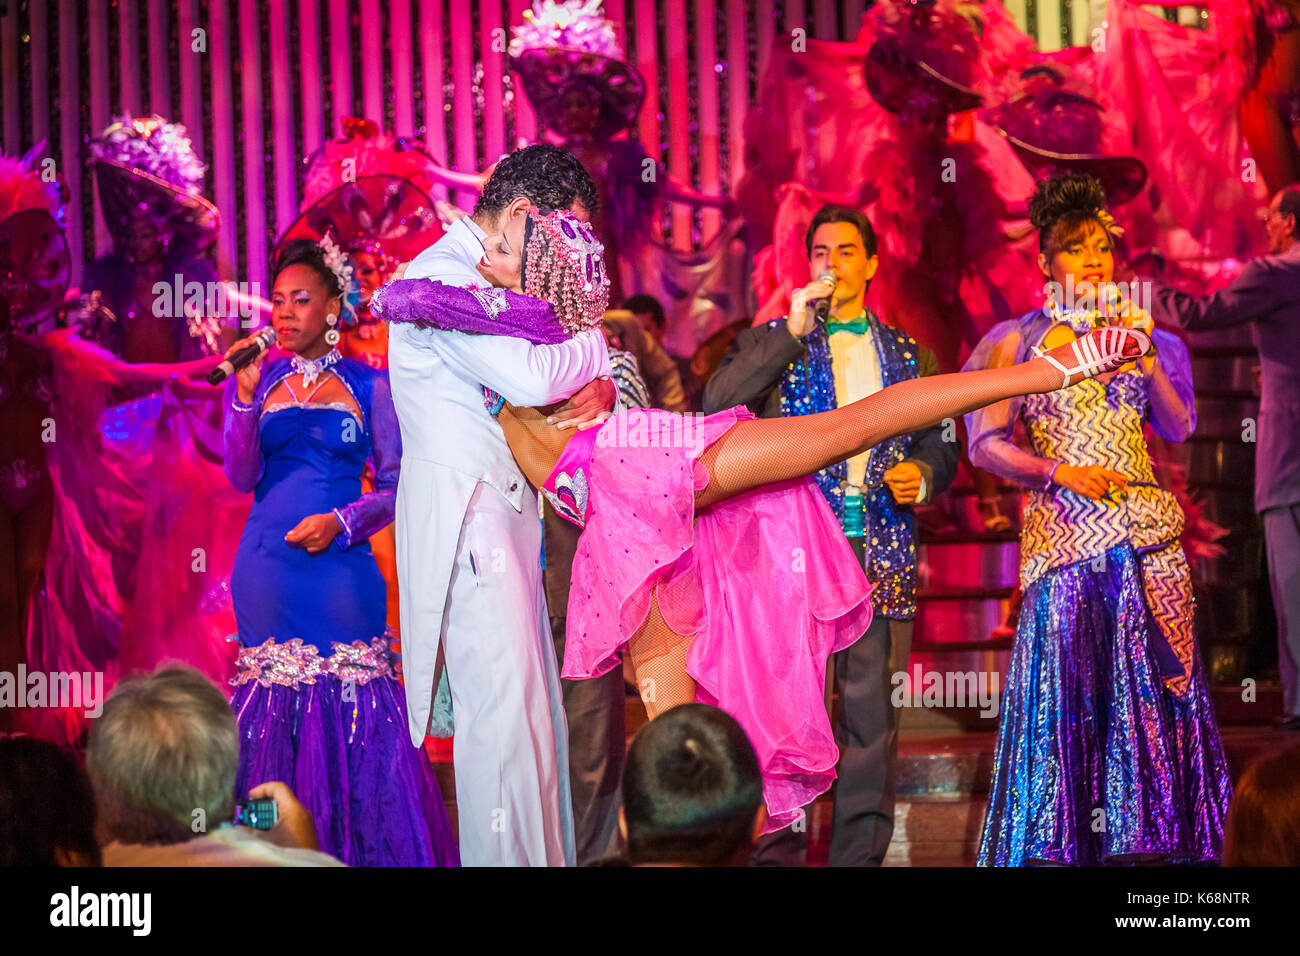 Exotic dancers performing live on stage in colourful costumes in a cabaret show for tourists in a nightclub in Havana, Cuba - Stock Image